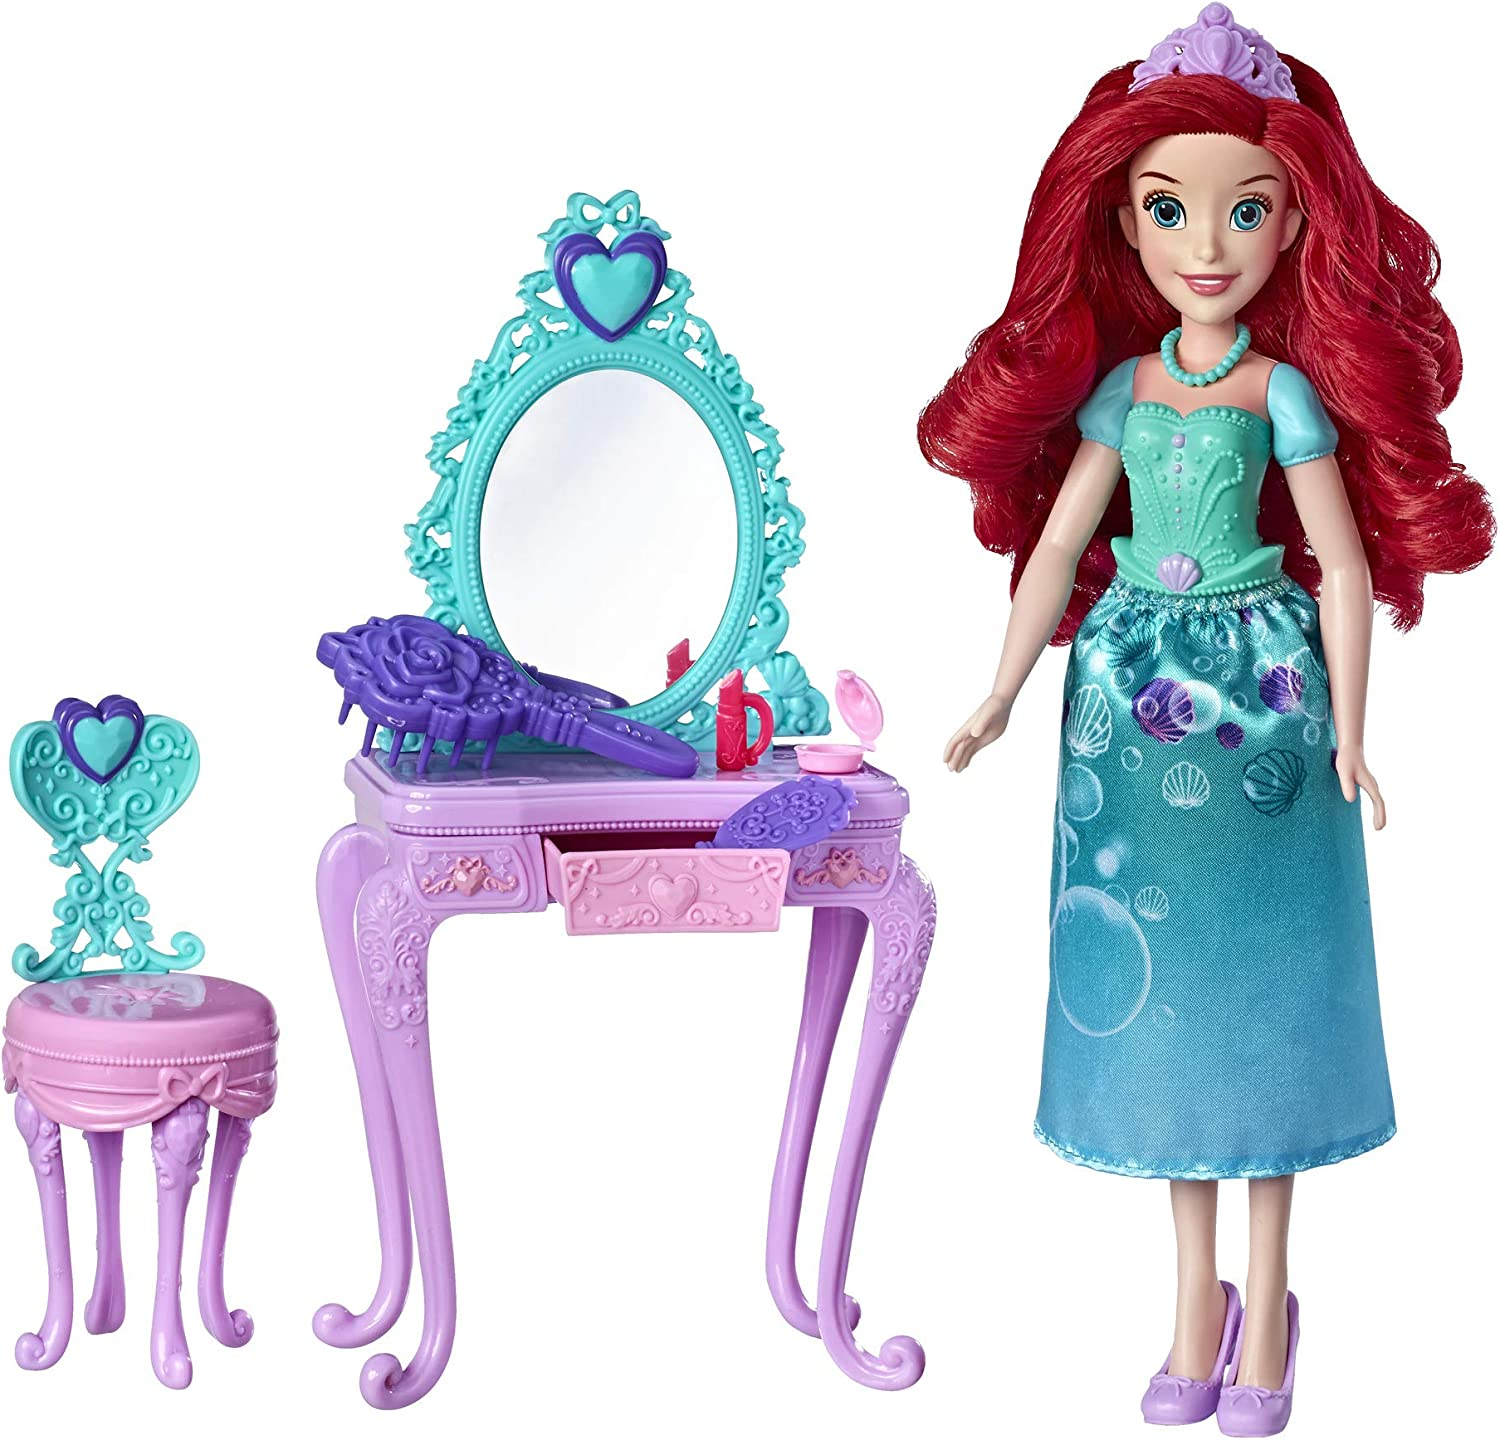 Amazon Com Disney Princess Ariel S Royal Vanity Toys Games